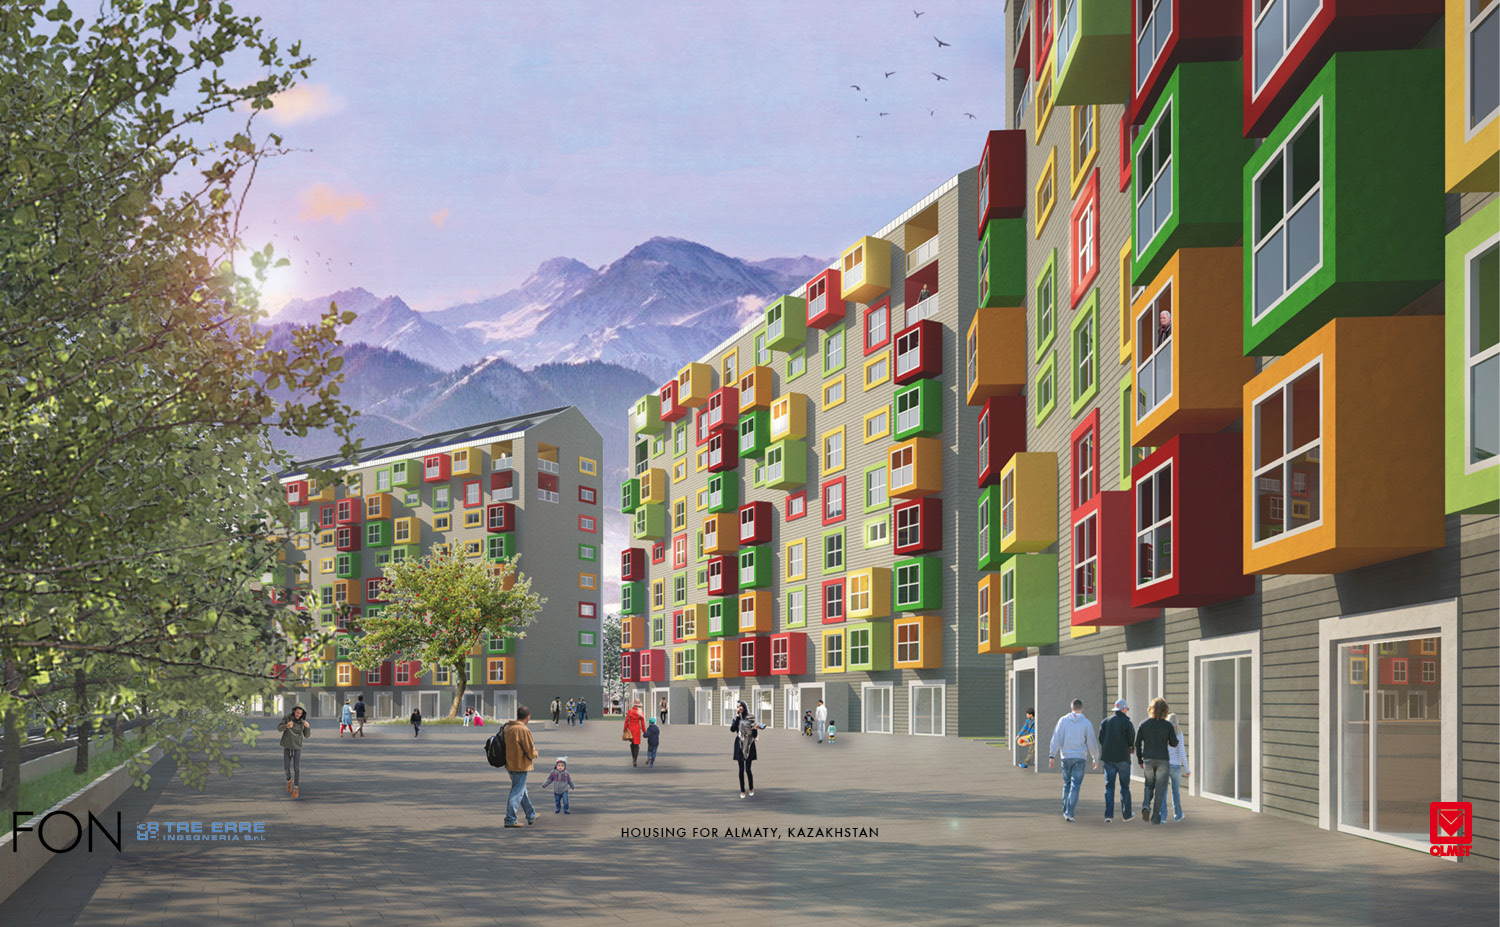 HOUSING FOR ALMATY-FON-01 }